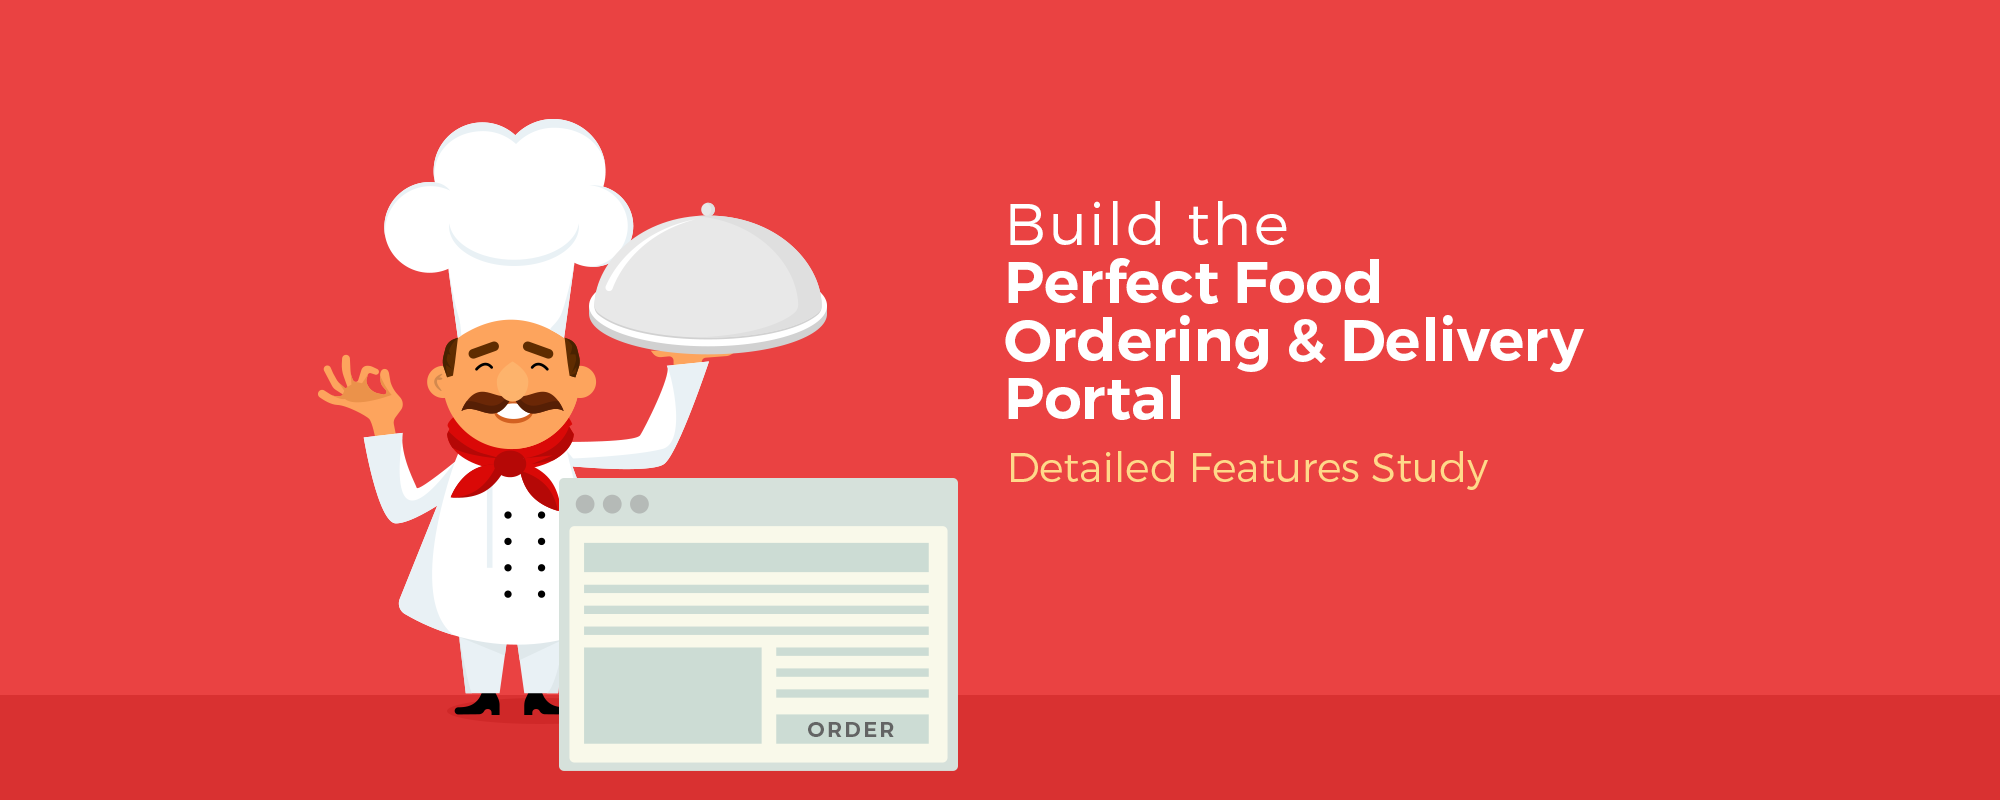 Looking To Start an Online Food Delivery Platform? Check Out These Key Website Features